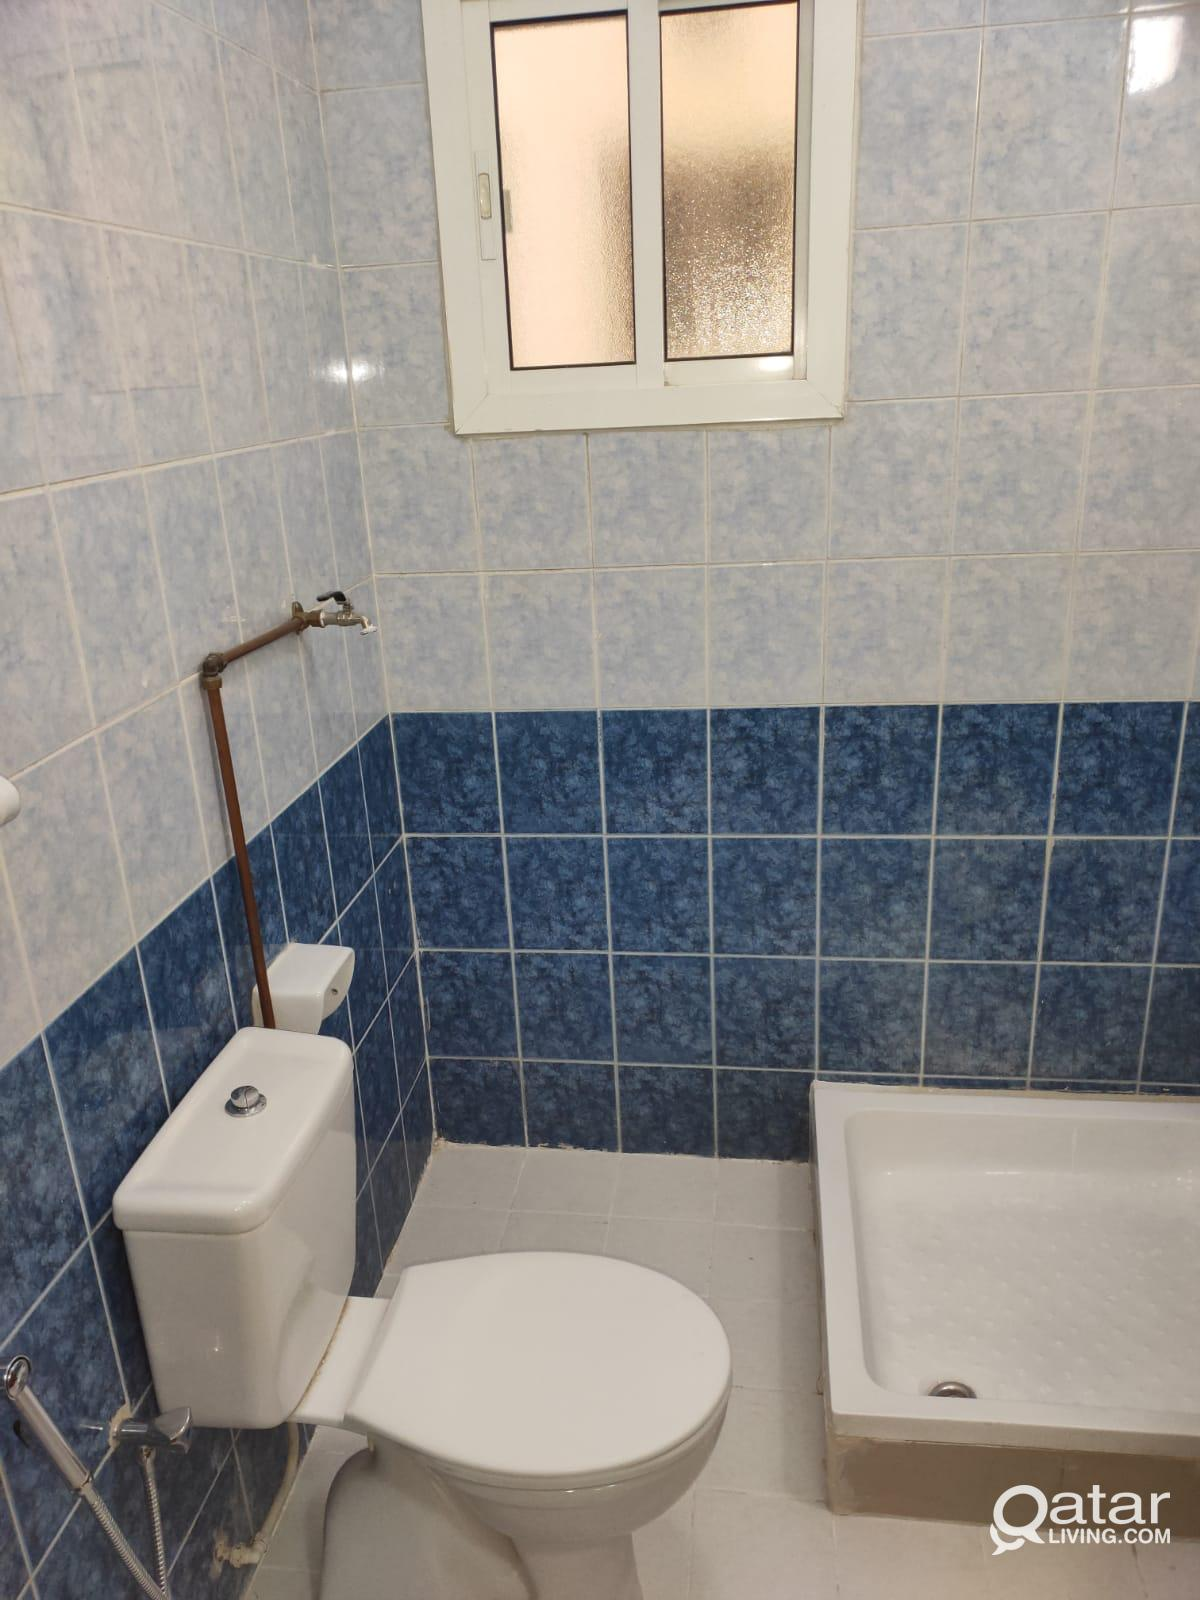 GREAT OFFER!2 bedrooms apartment for rent in Madin